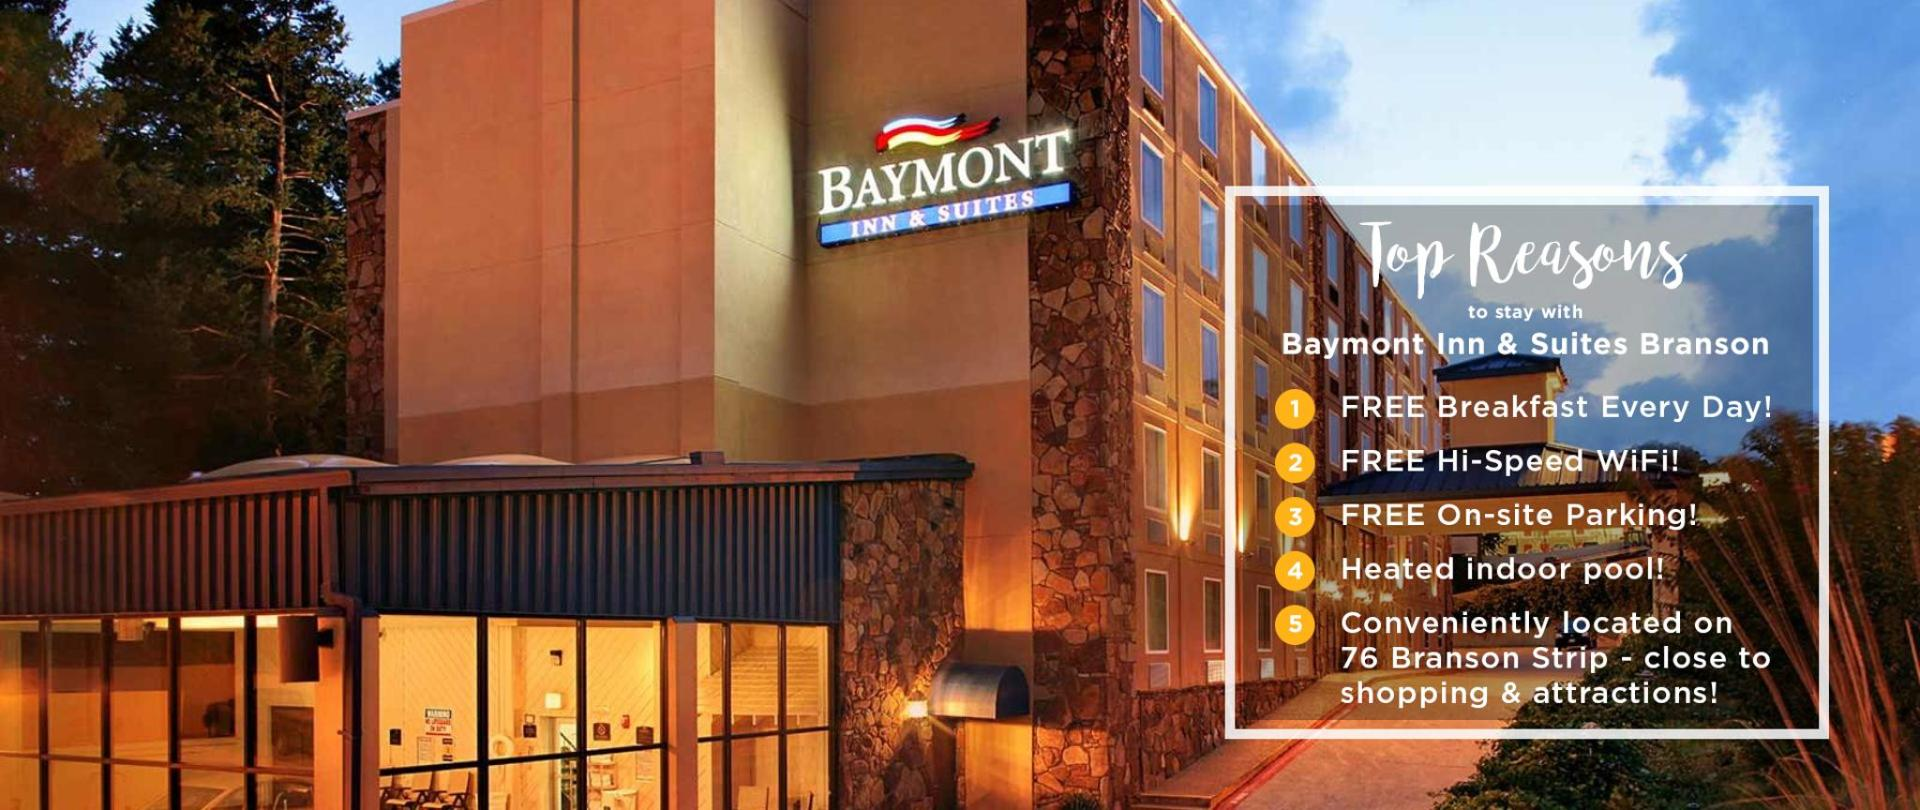 baymont-inn-and-suites-branson-on-the-strip-reasons-to-stay-1.png